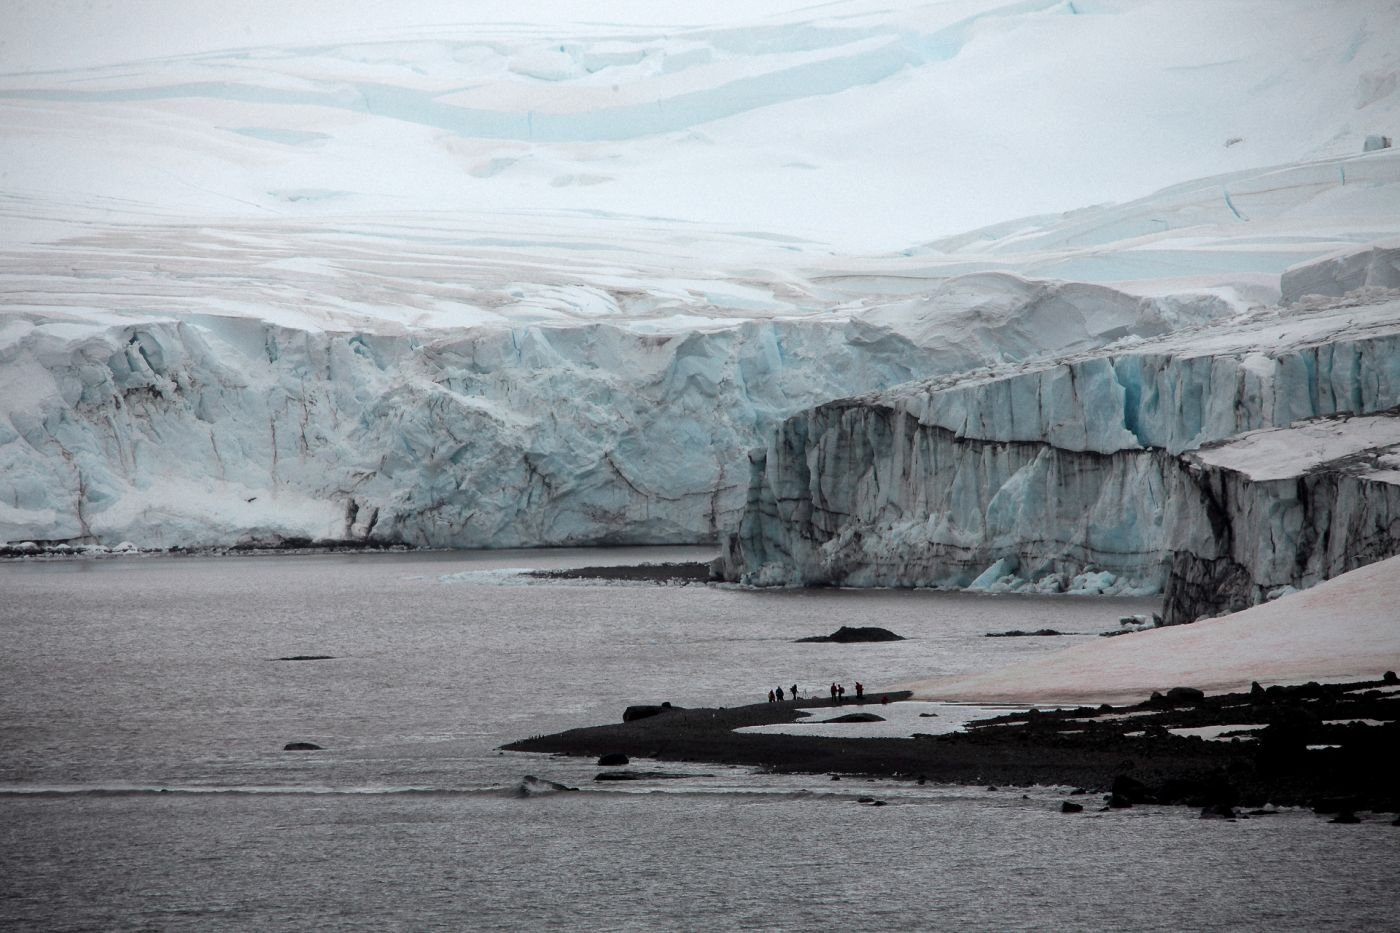 Chilean Navy Supports Scientific Expedition to the Antarctic